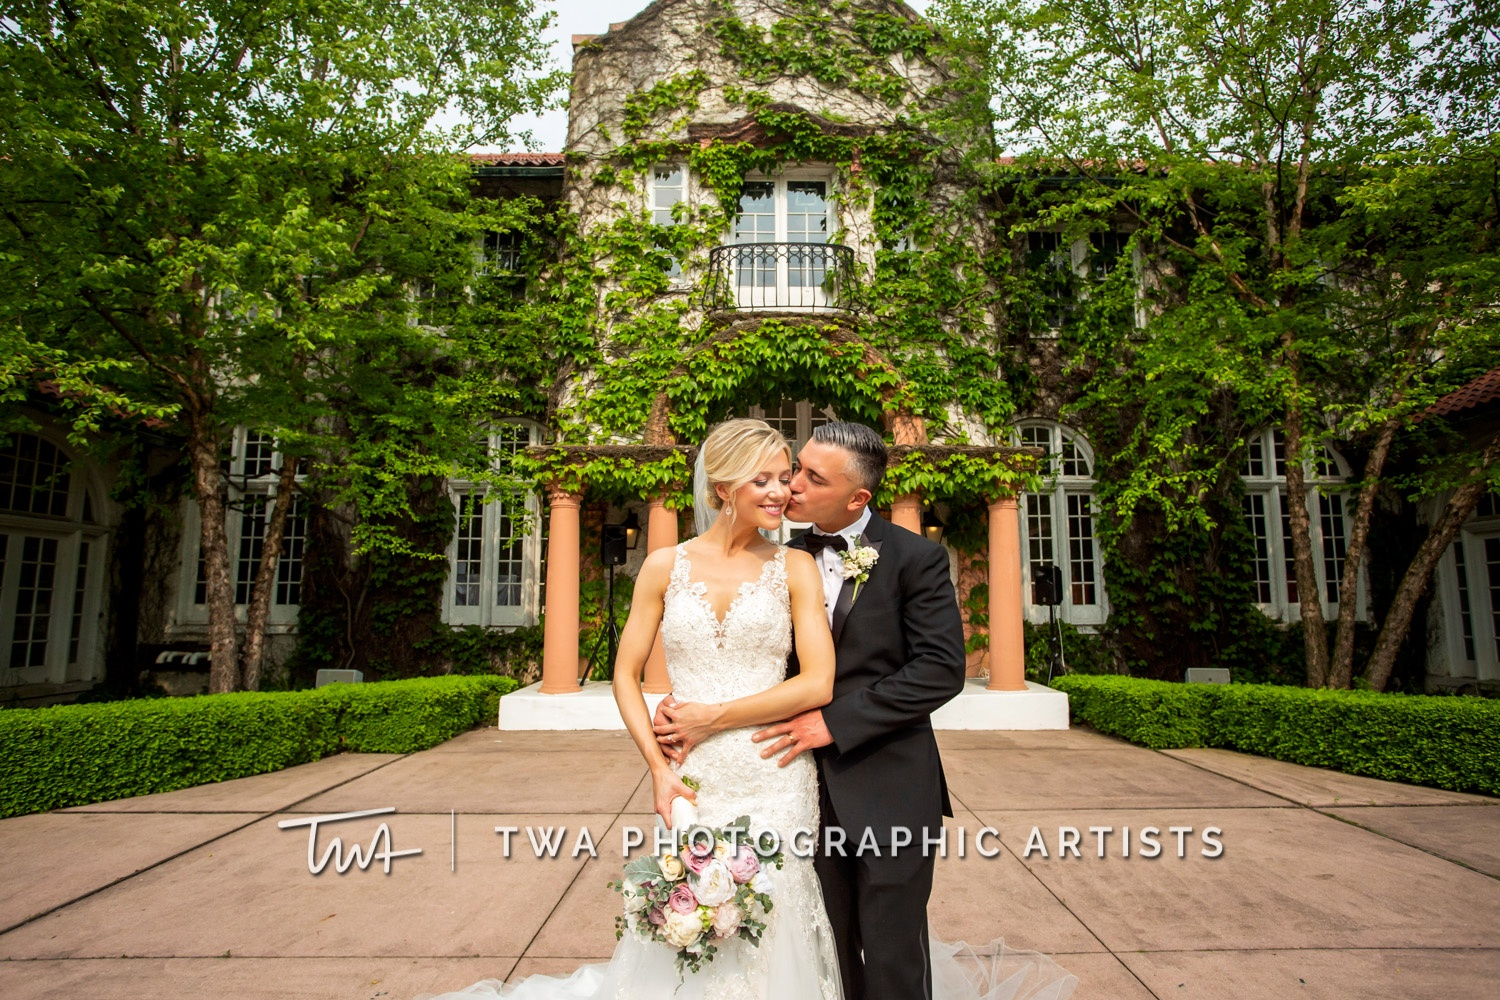 Chicago-Wedding-Photographer-TWA-Photographic-Artists-Ravisloe-CC_Steele_Zenere_JM_MP-0292